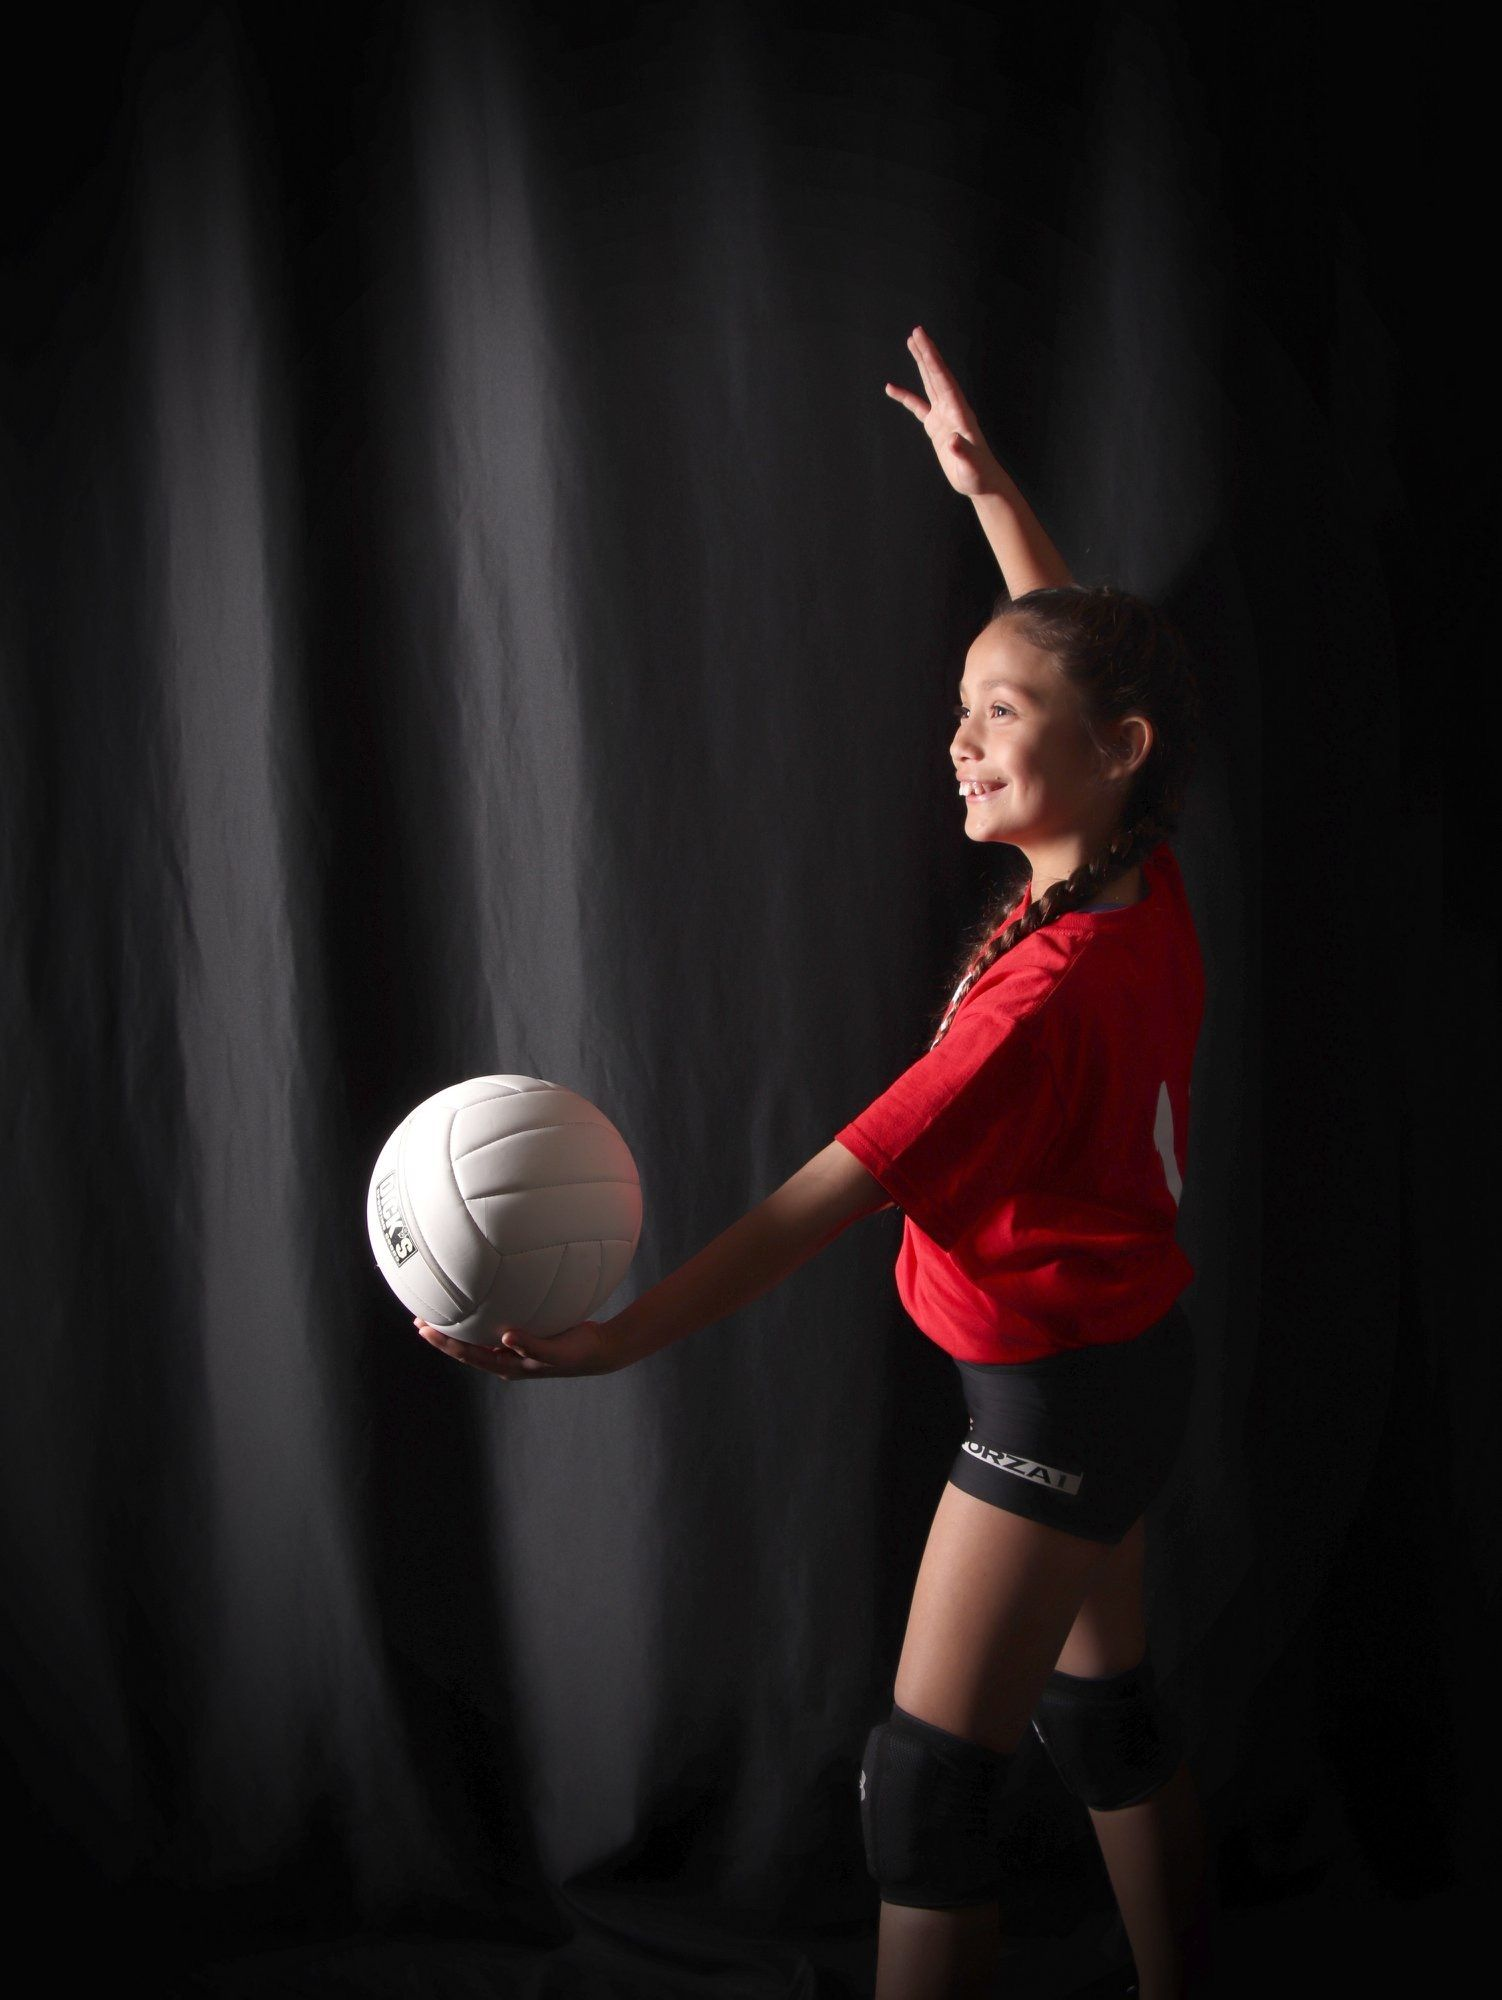 Forza1 Volleyball Hunter Hernandez In 2020 Hernandez Ball Exercises Volleyball